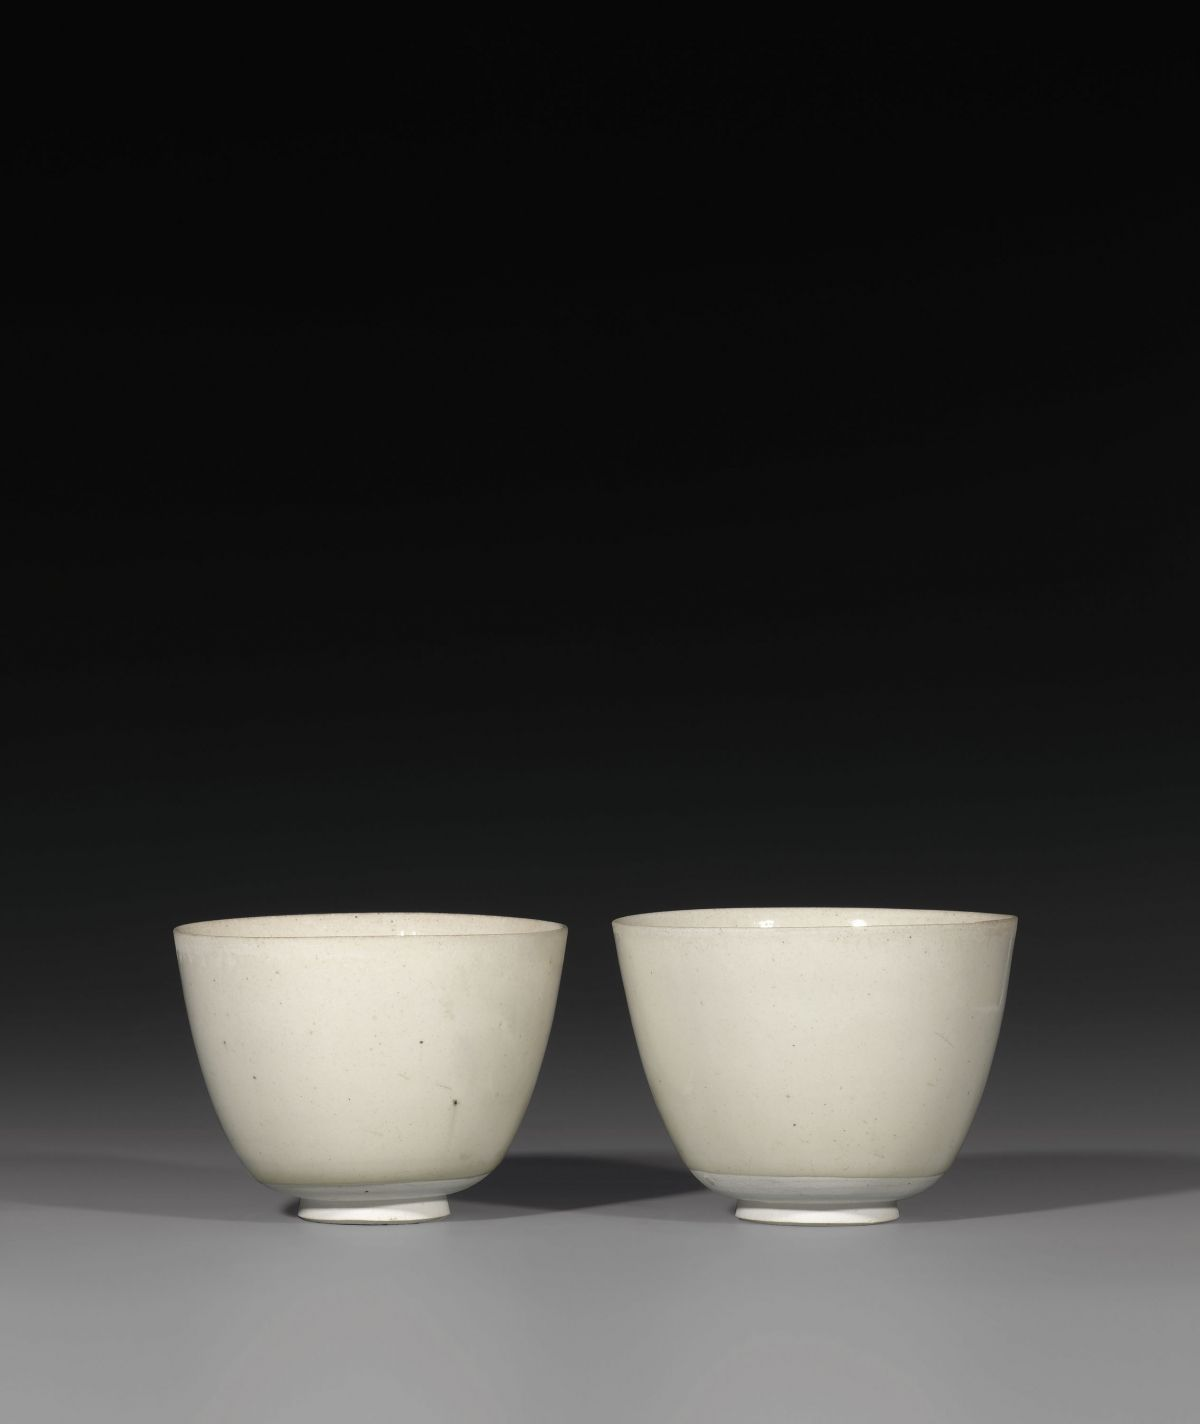 Two cups sui dynasty ad 581 618 xing or gongxian kilns 2015 two cups sui dynasty ad 581 618 xing or gongxian kilns biocorpaavc Choice Image